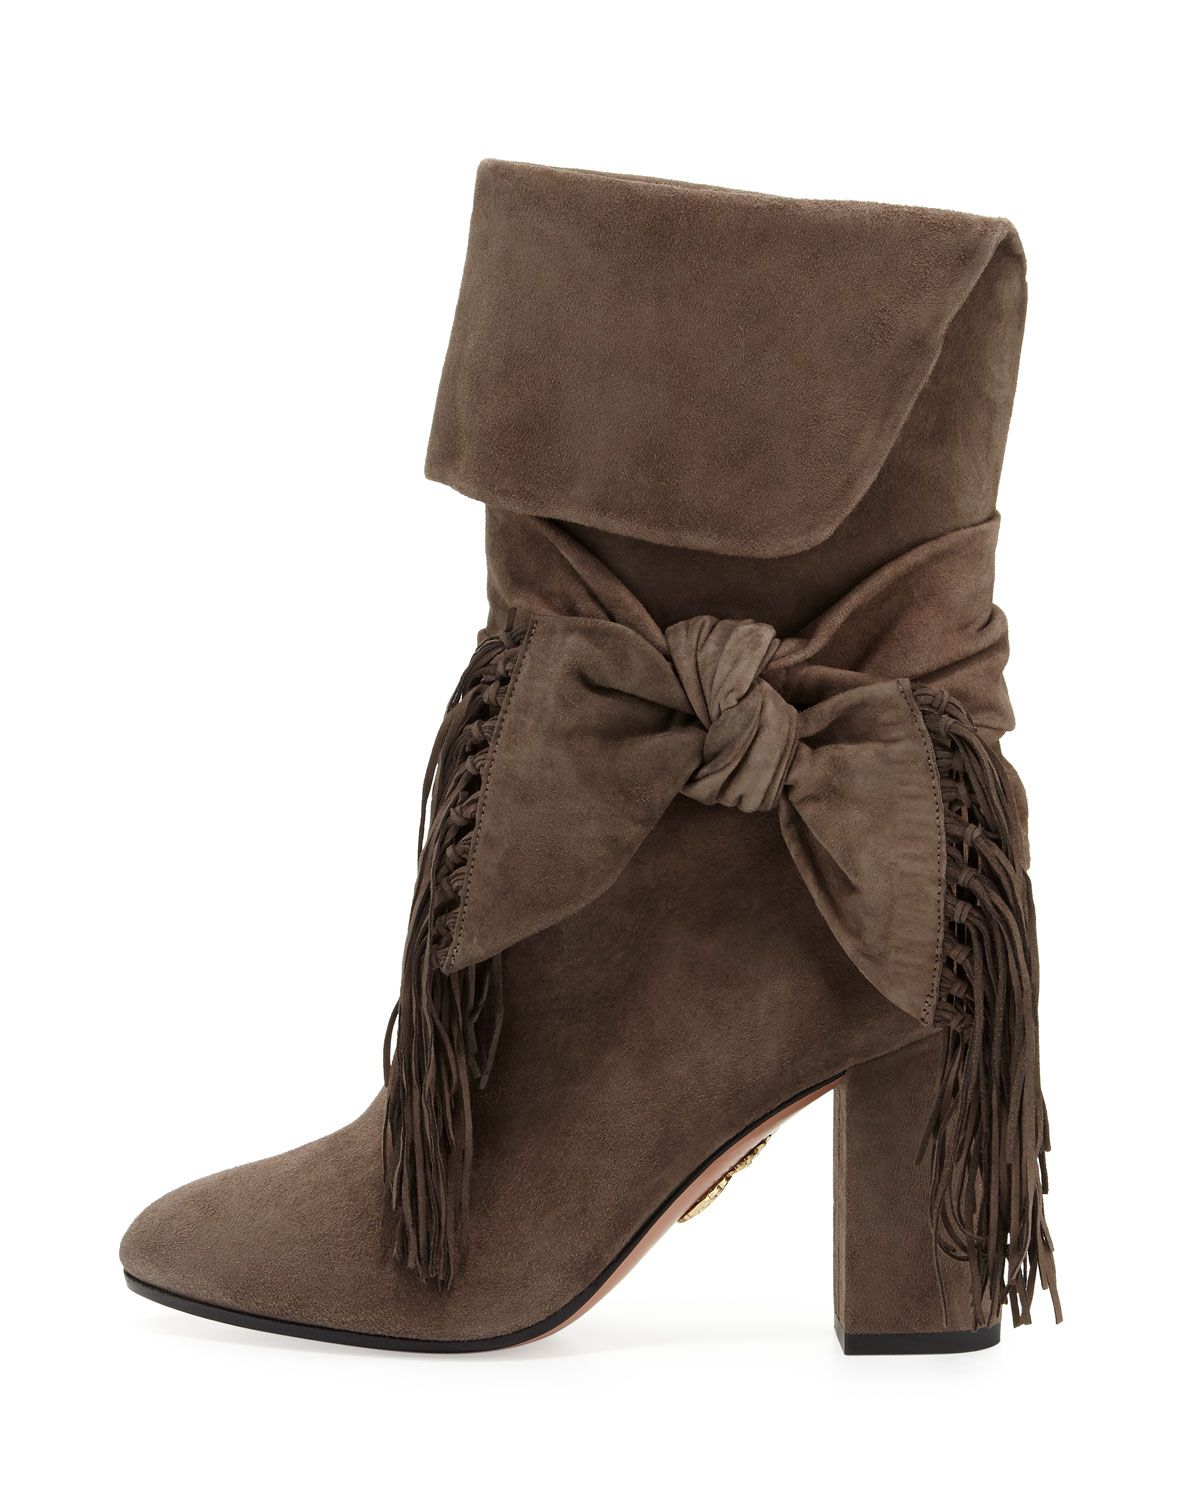 best store to get Aquazzura Fringe Bow Booties shop offer bbFF4TnNr2